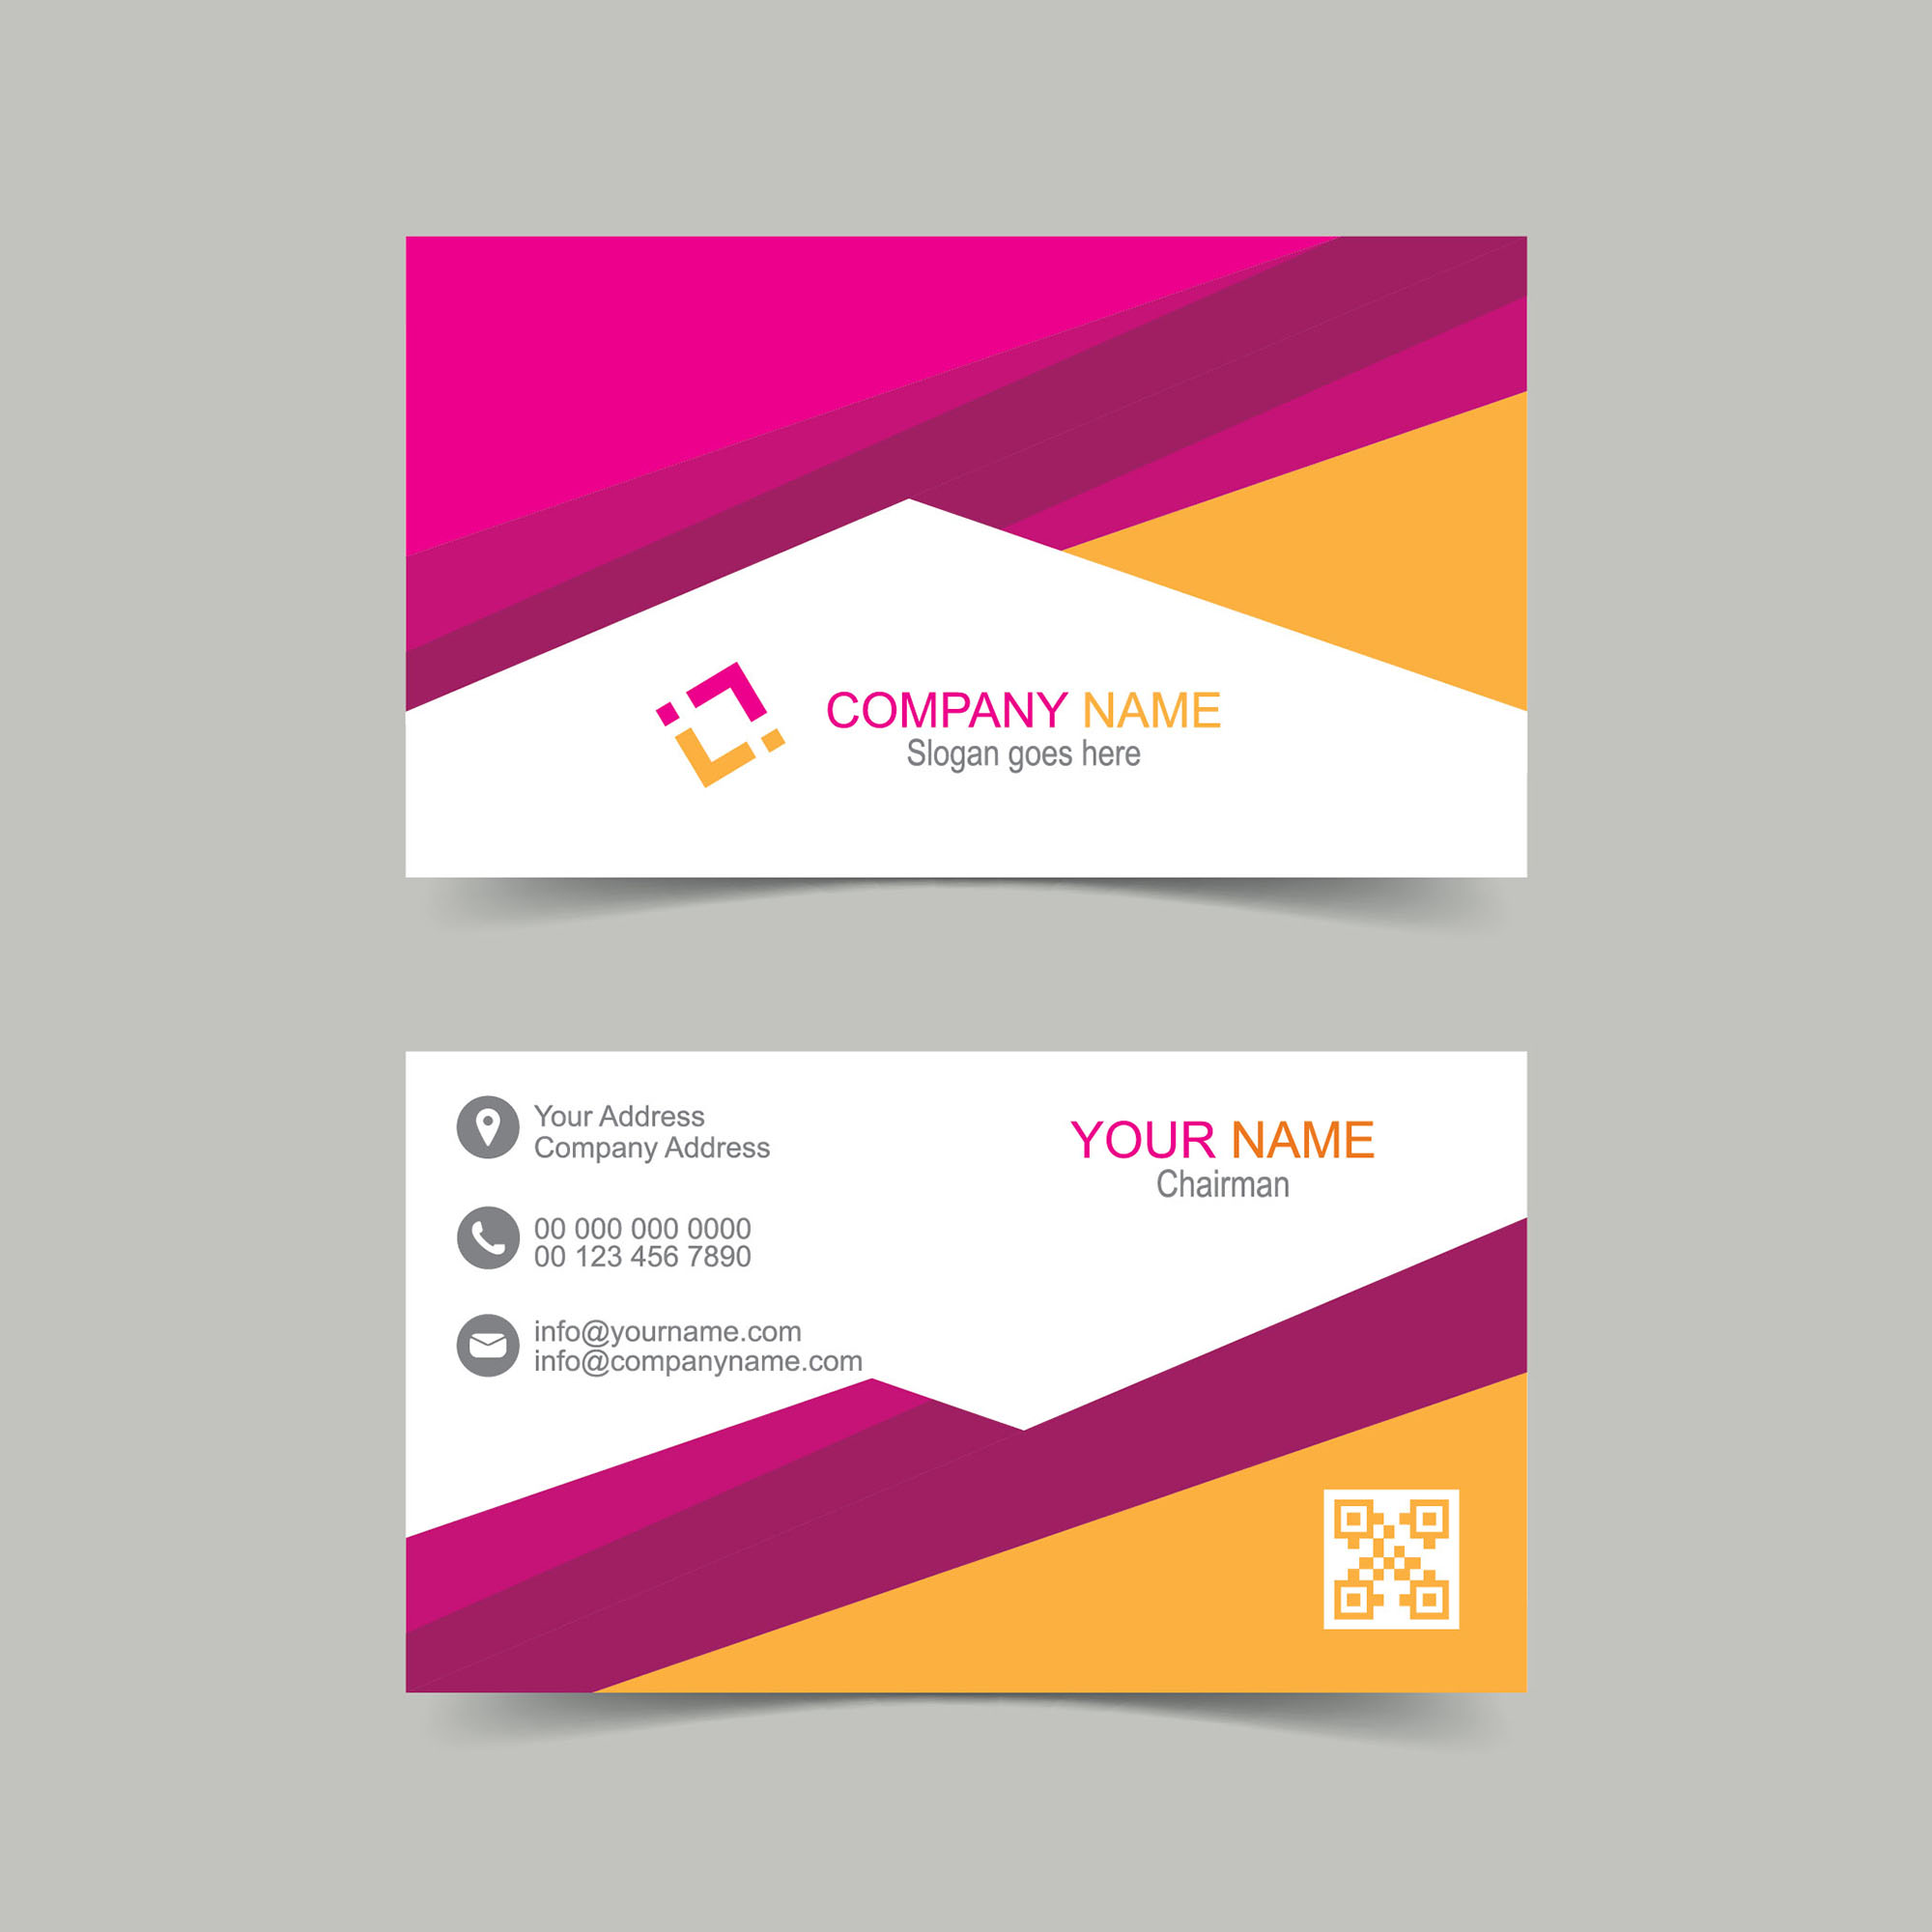 Vector business card design free download wisxi business card business cards business card design business card template design templates flashek